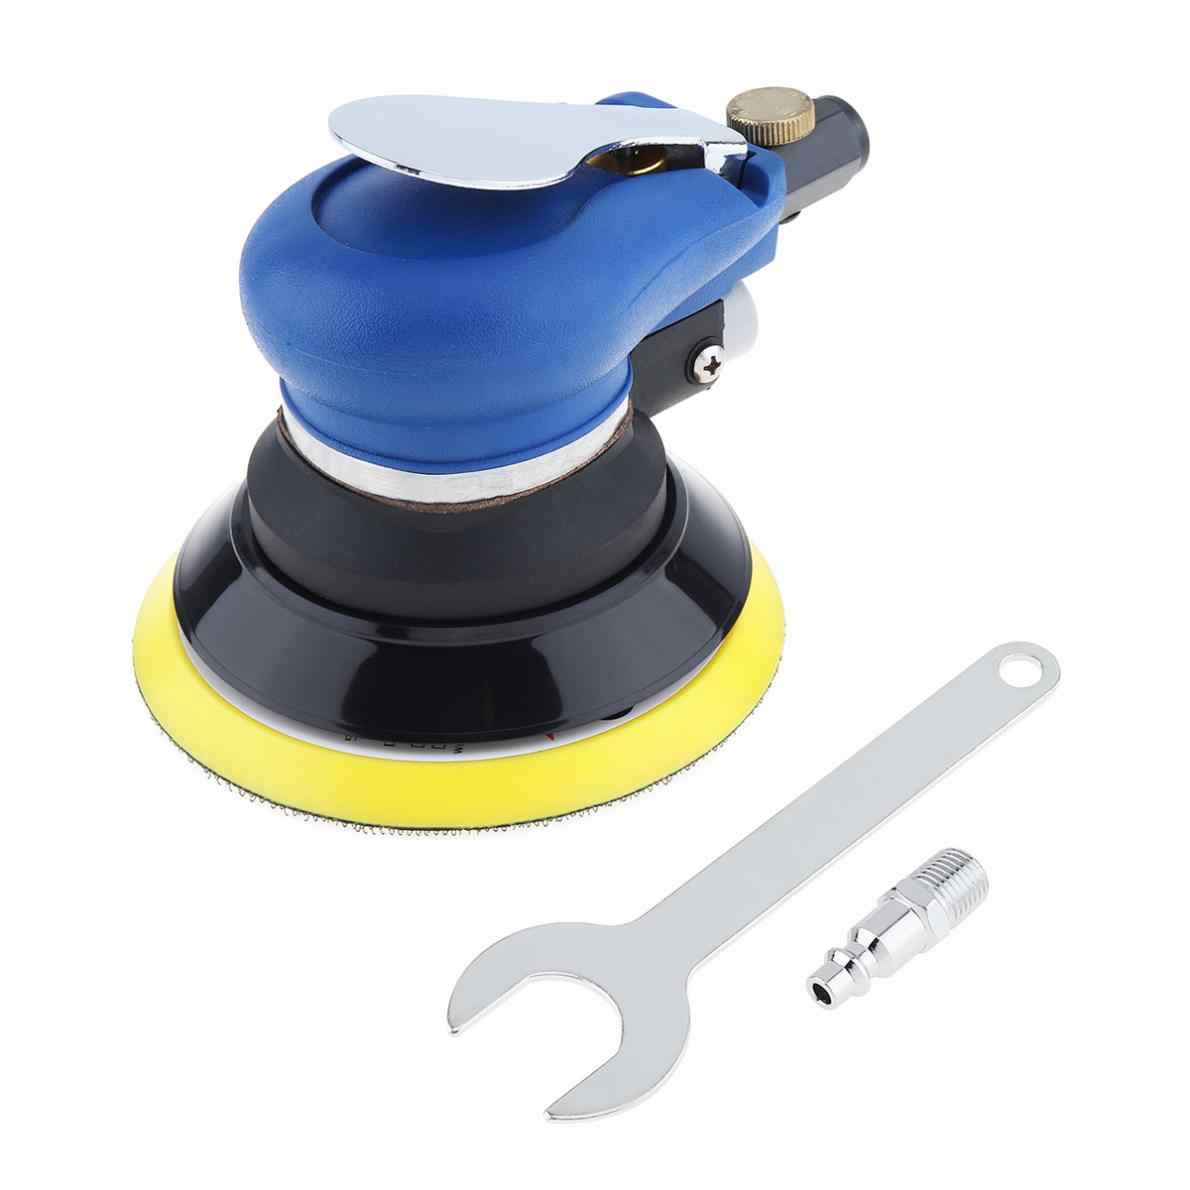 5 Inch Matte Surface Pneumatic Polishing Machine Random Orbital with Sander Pad for Cars Polishing / Grinding / Waxing